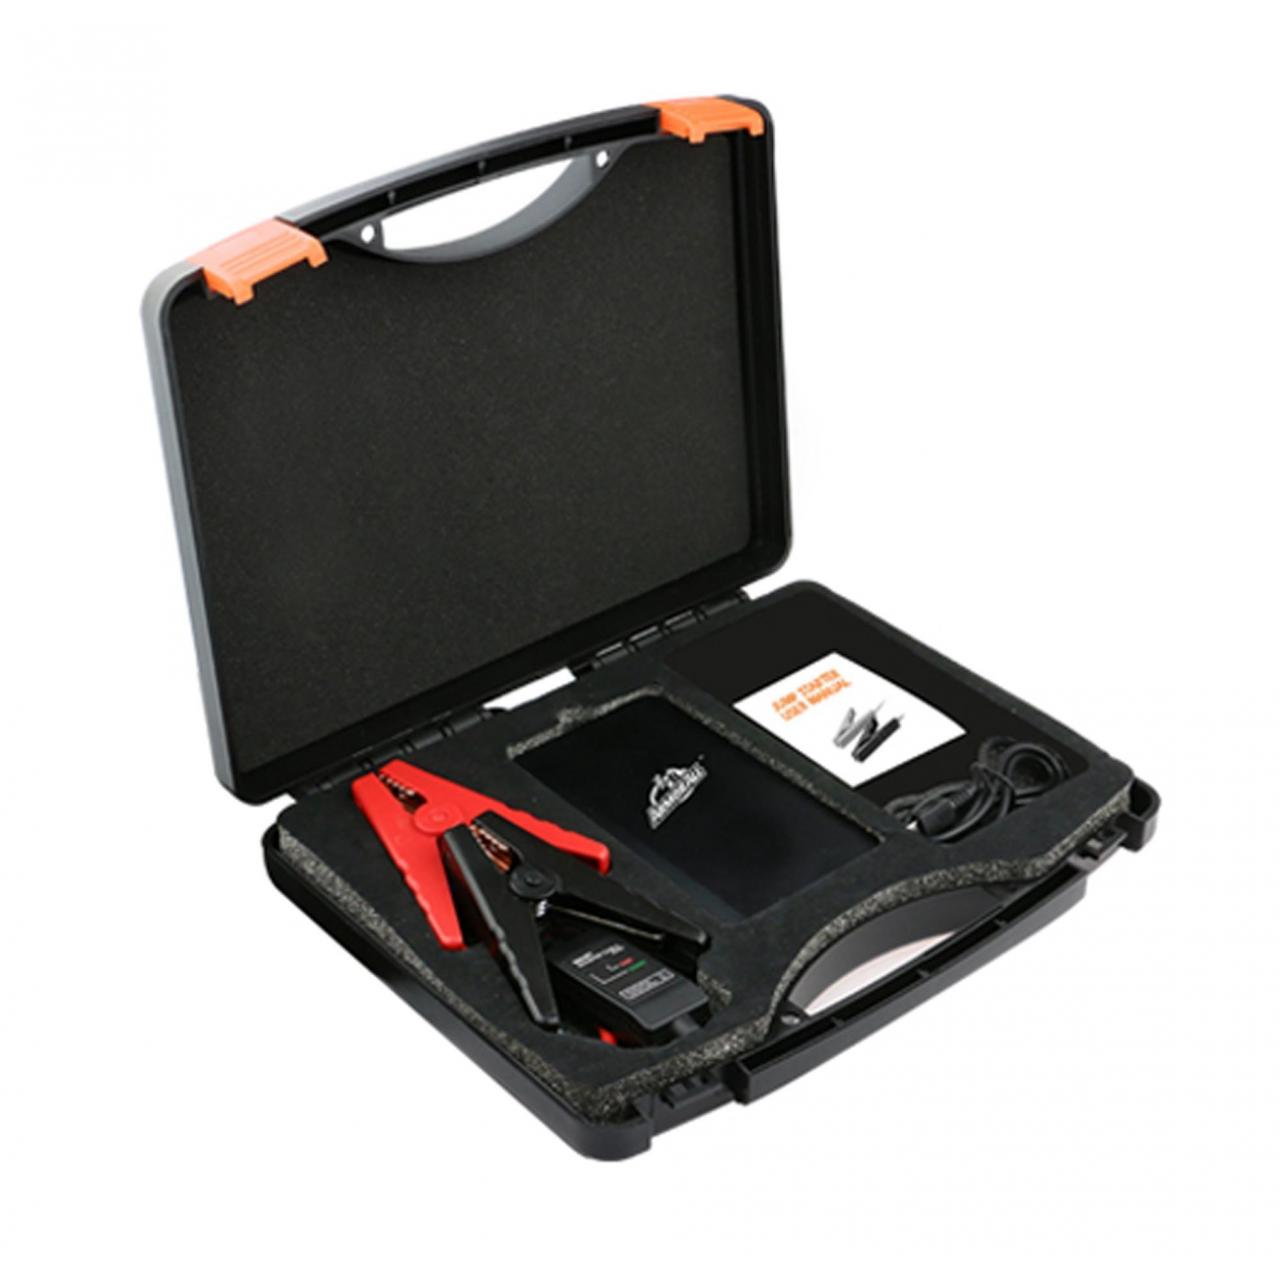 Quality Car Organizers: 3-In-1 Emergency Jump Starter Not for sale